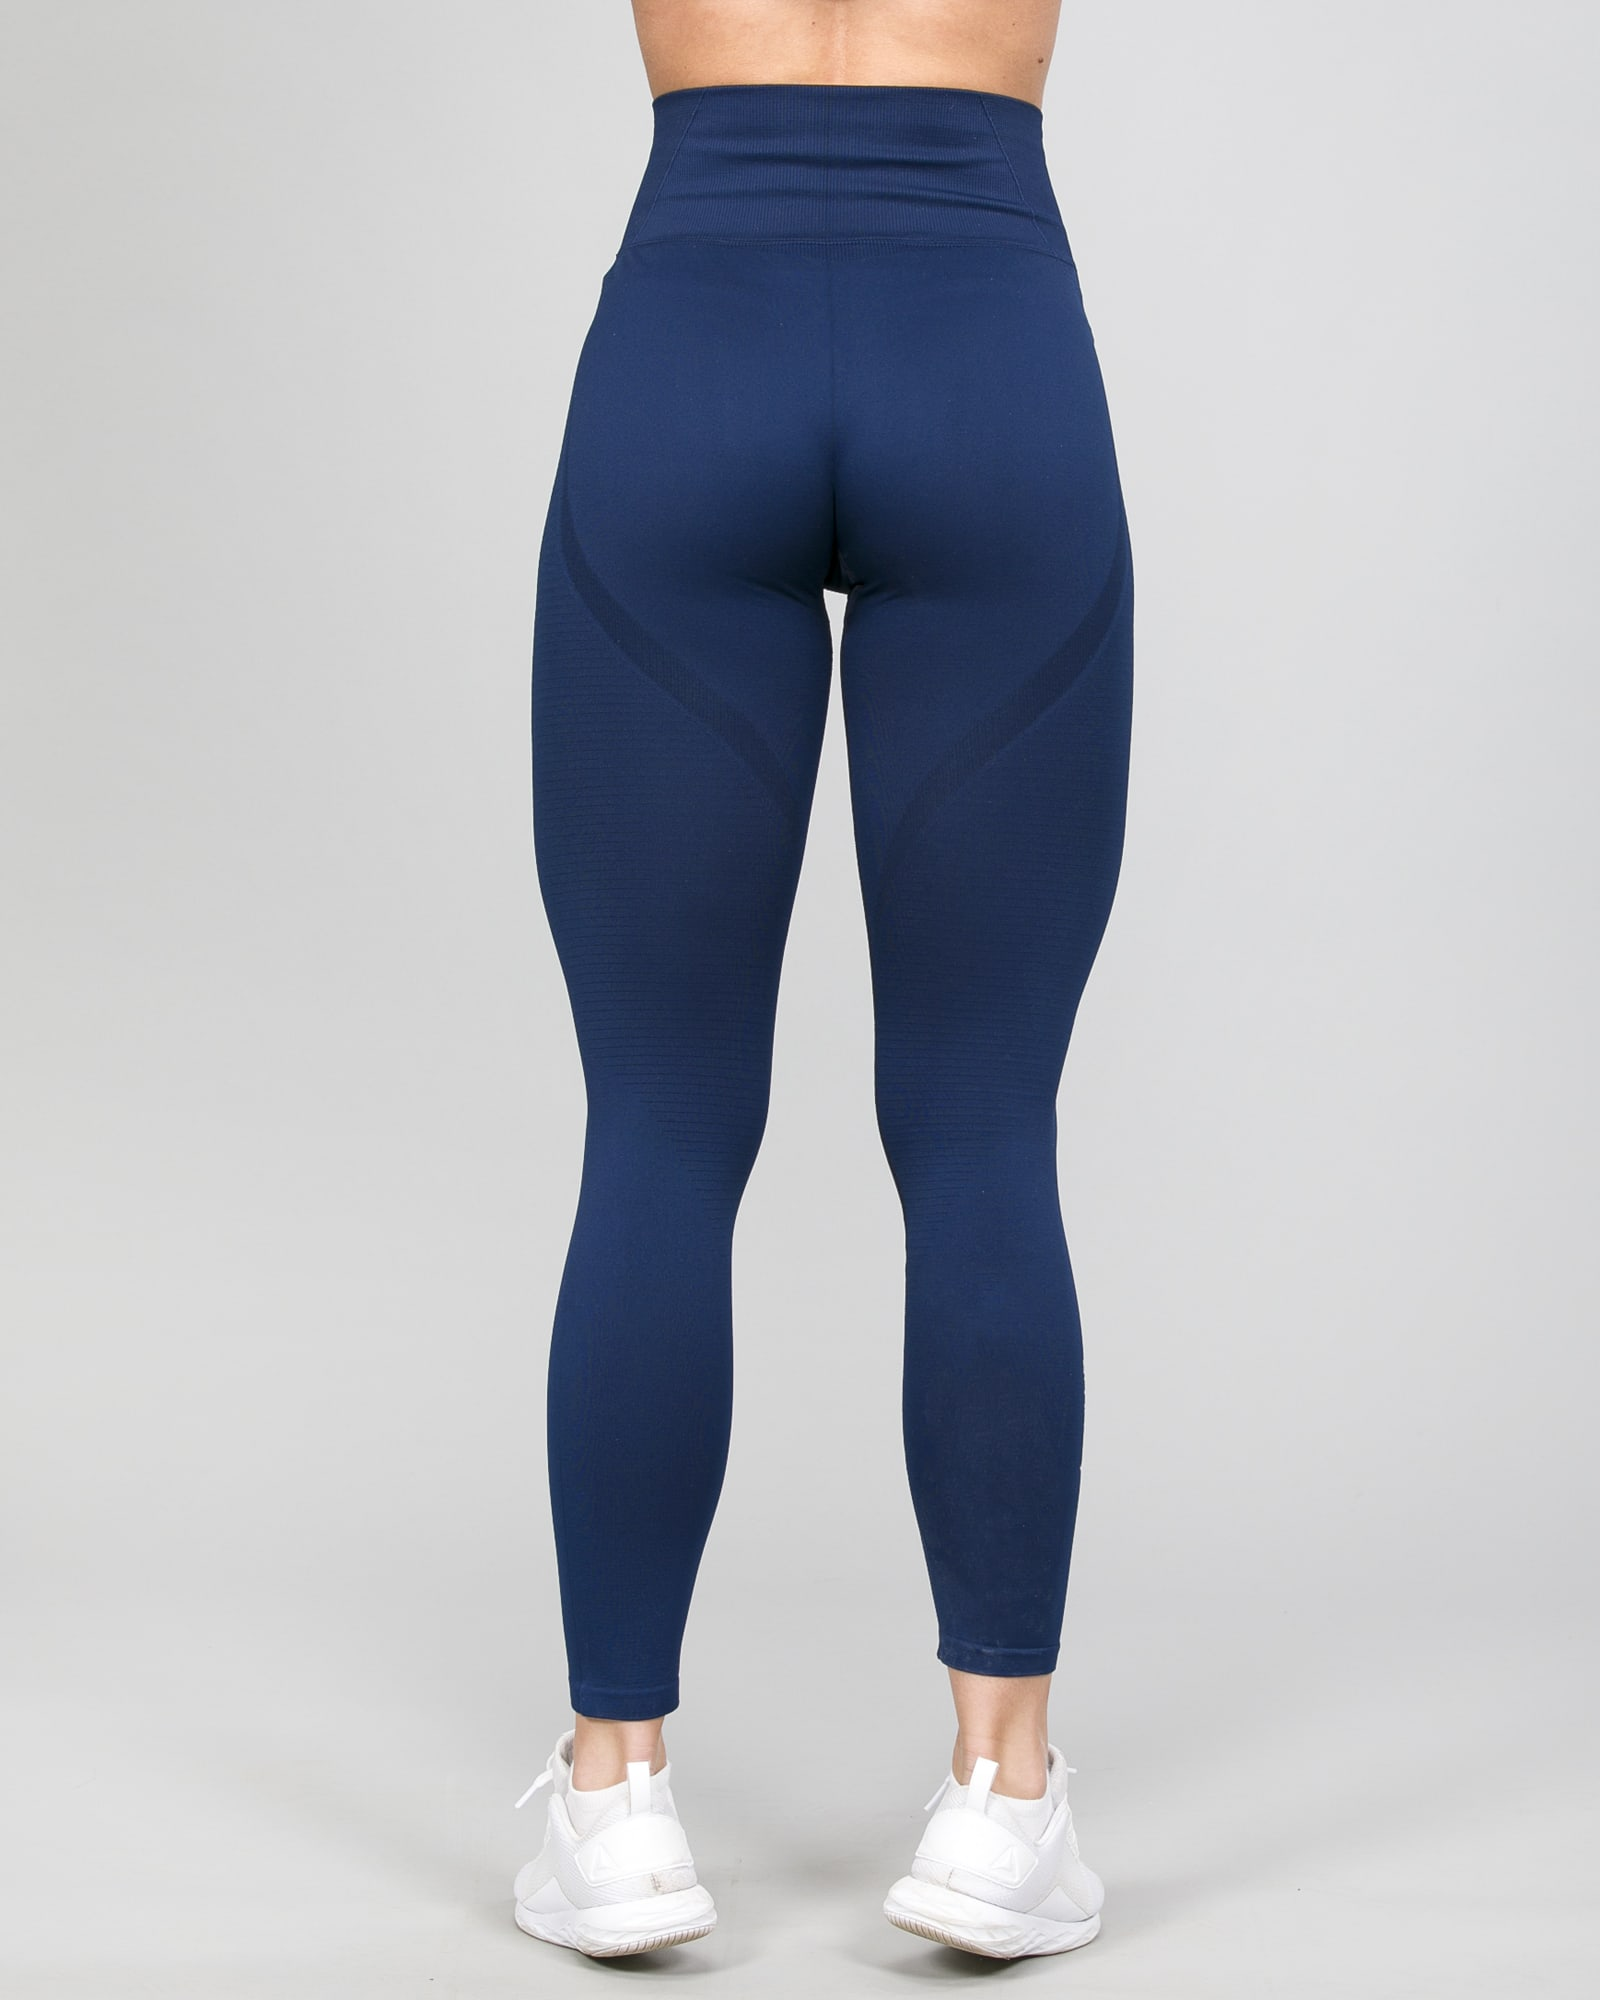 Famme Vortex Legging - Navy Blue vhwl-nv c